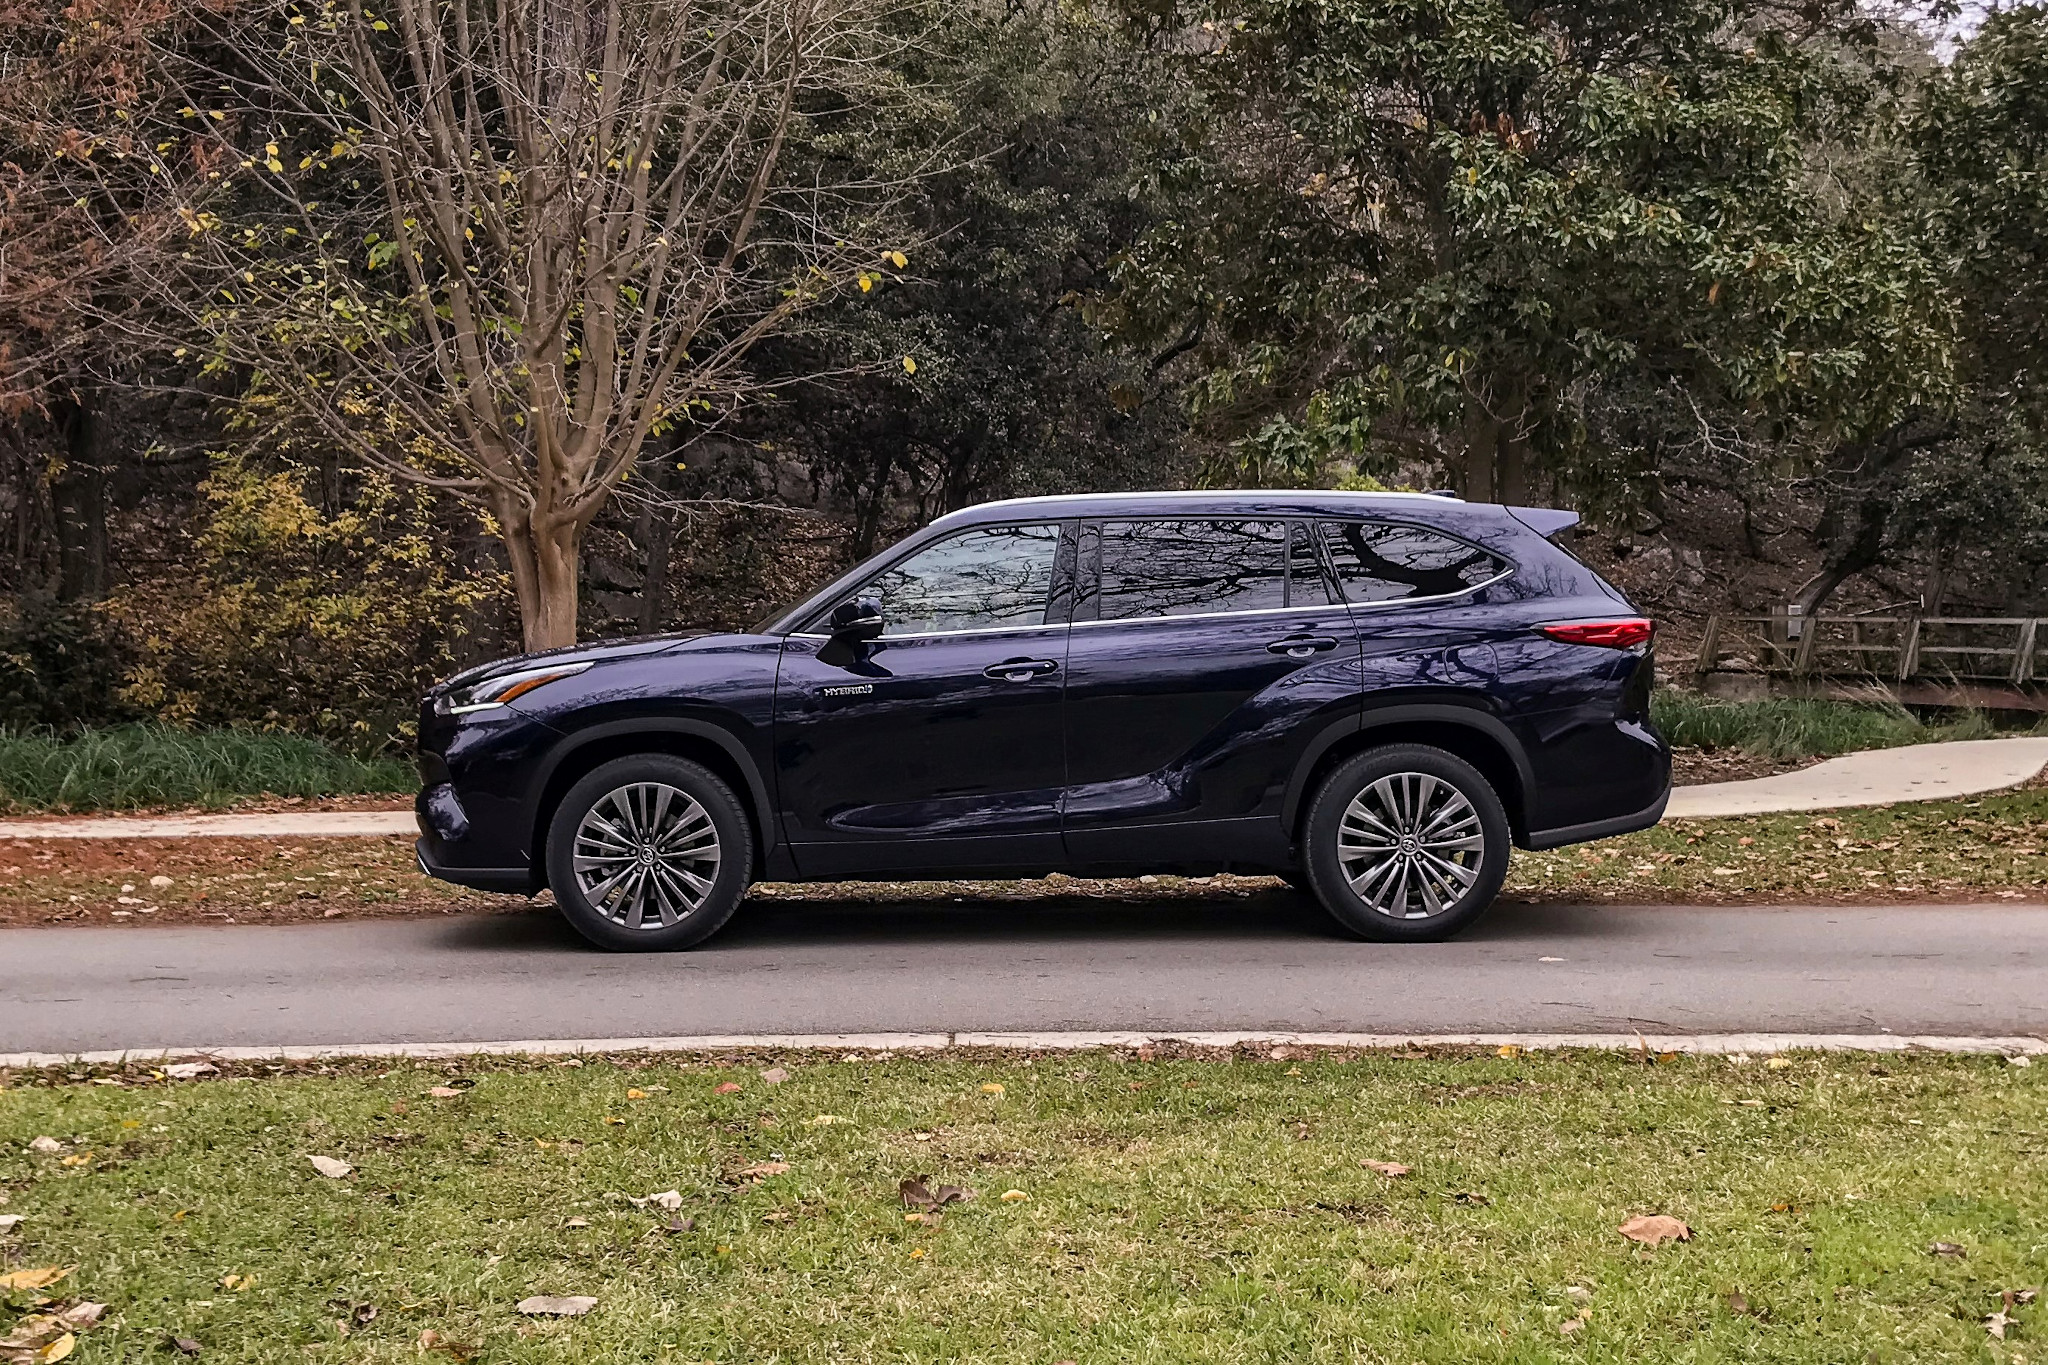 10 Biggest News Stories of the Week: 2020 Toyota Highlander Lands Lower Than Jeep Wrangler EcoDiesel